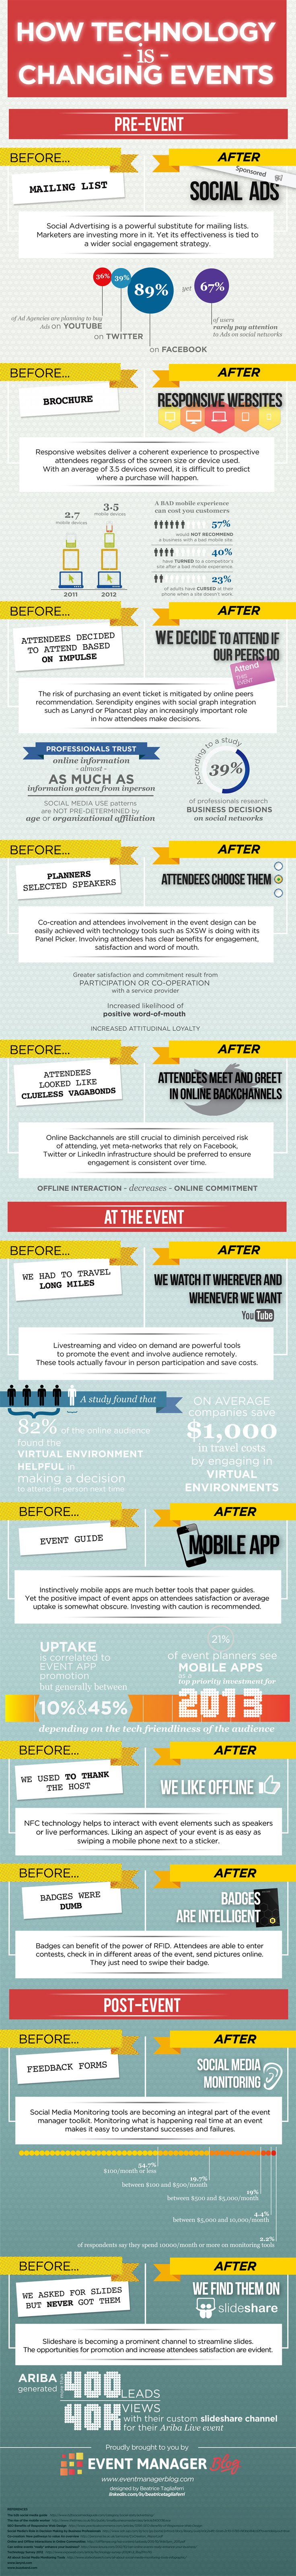 How technology is changing events. Infographic by eventmanagerblog.com